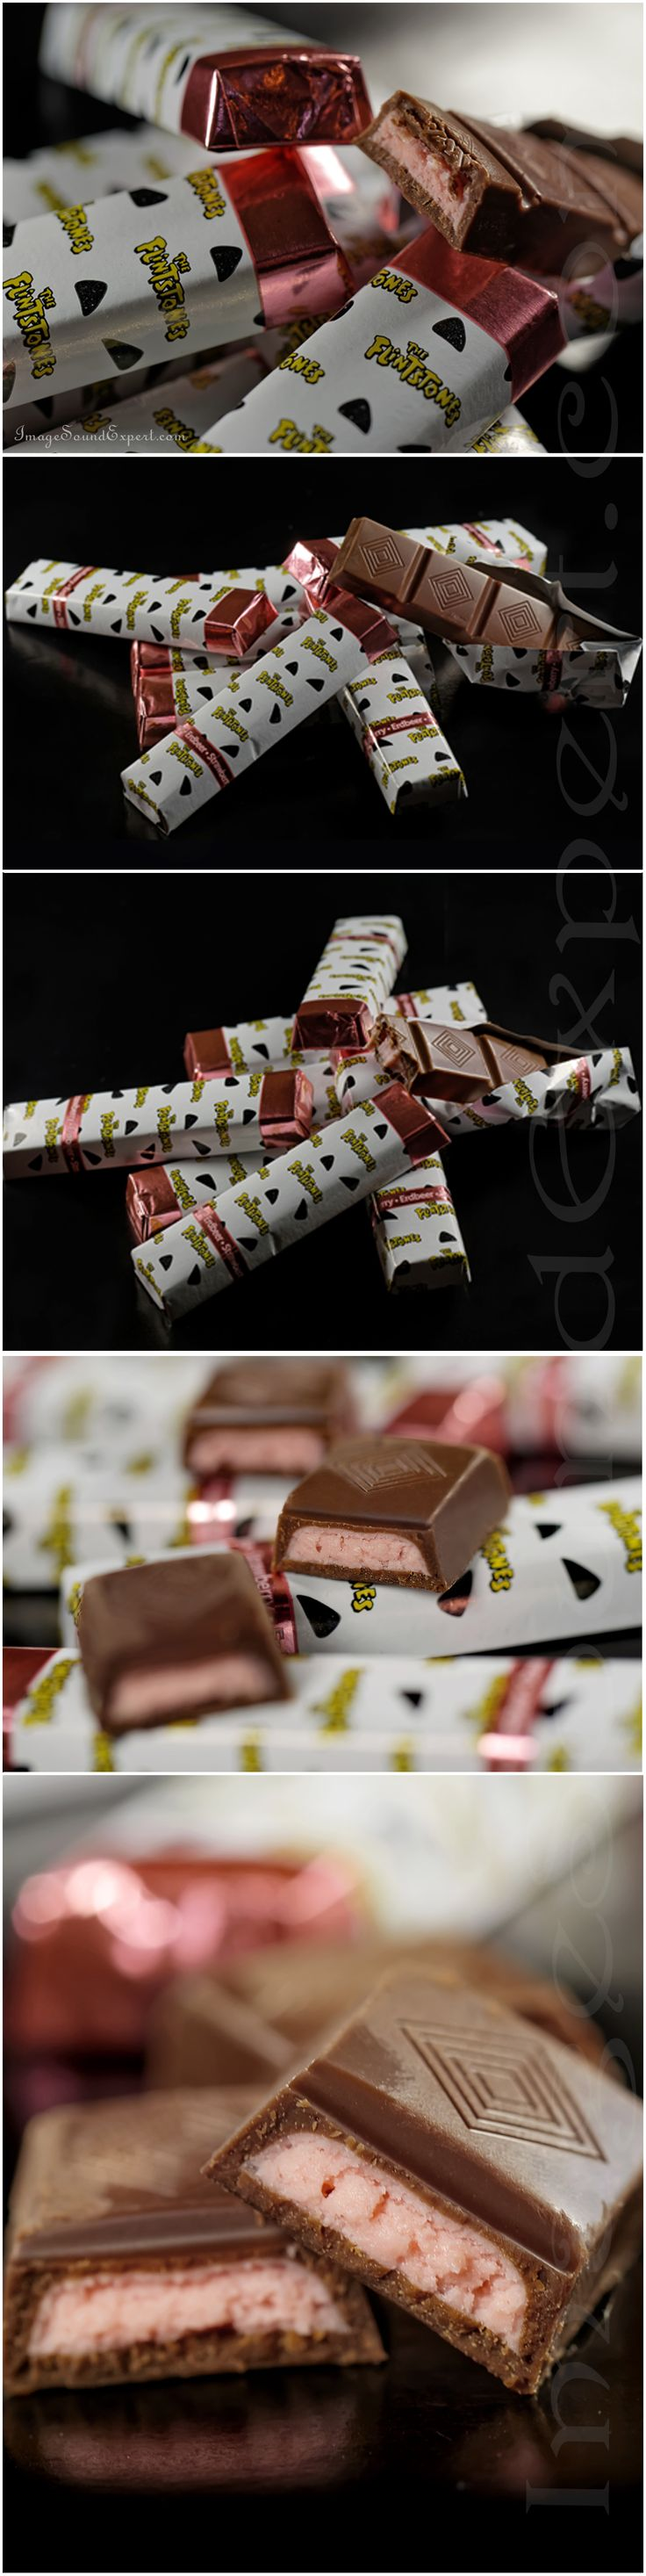 product valentines day chocolate 2016 new